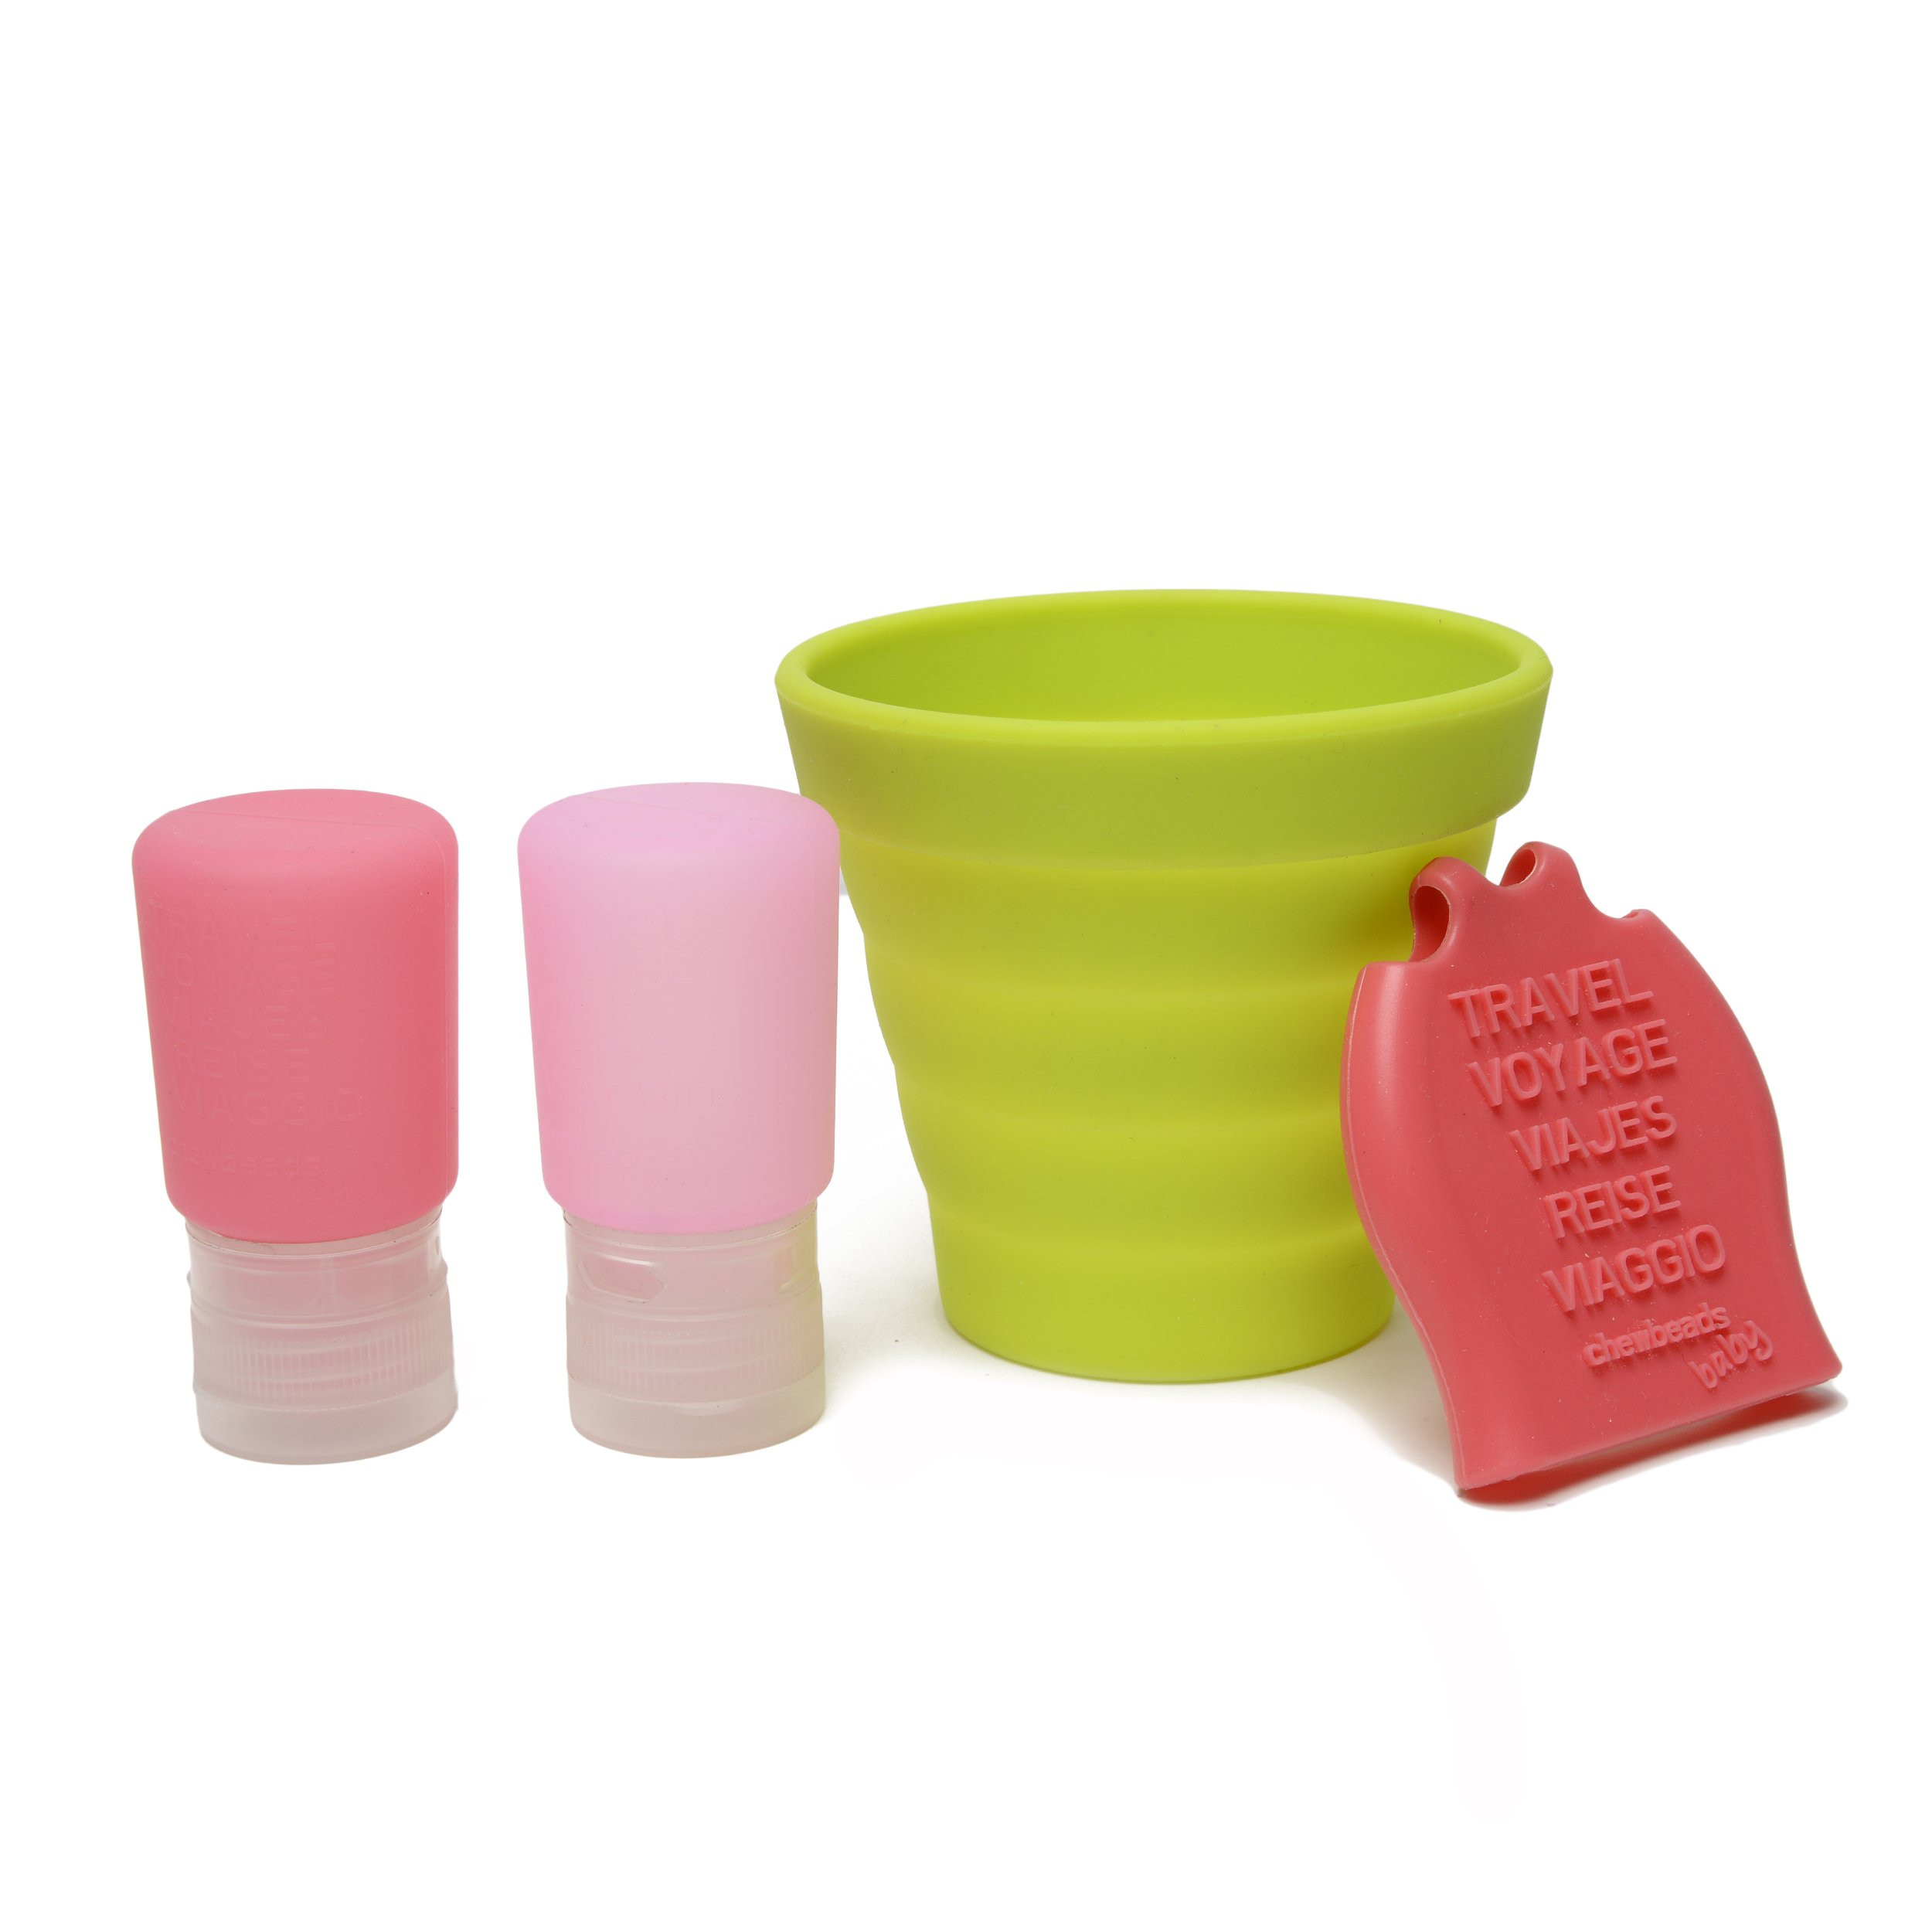 CB GO Tubby To Go Travel Bath Set by Chewbeads, Pink